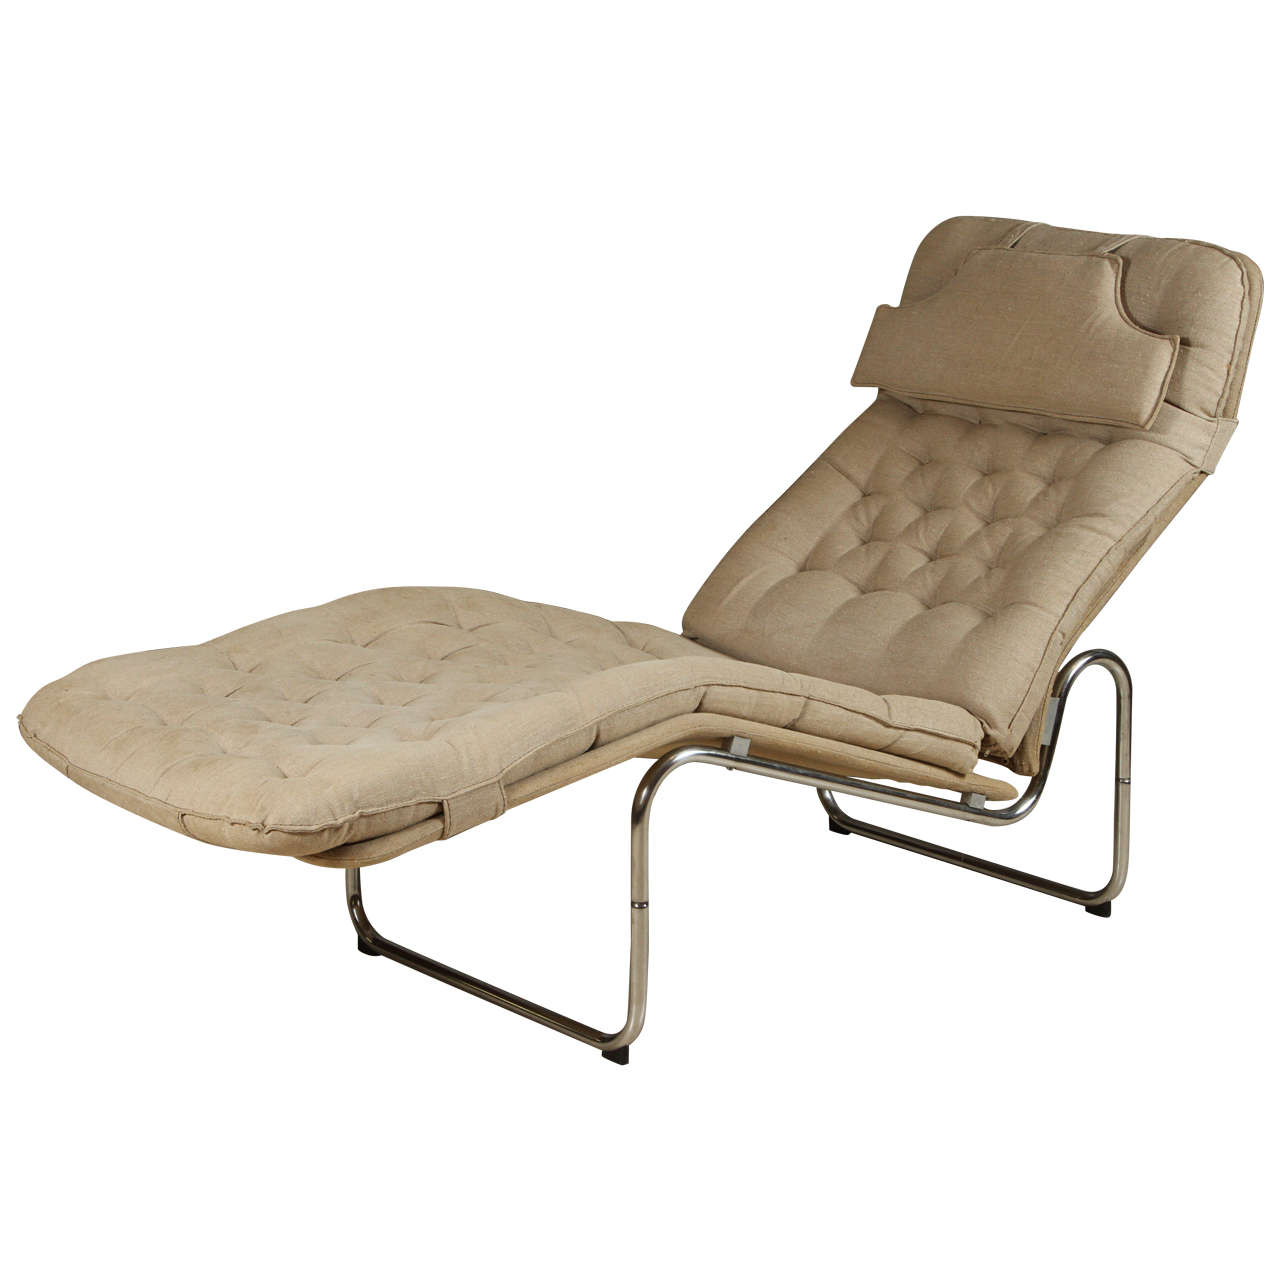 Tufted scandinavian chaise lounge in original belgian for Bernard chaise lounge